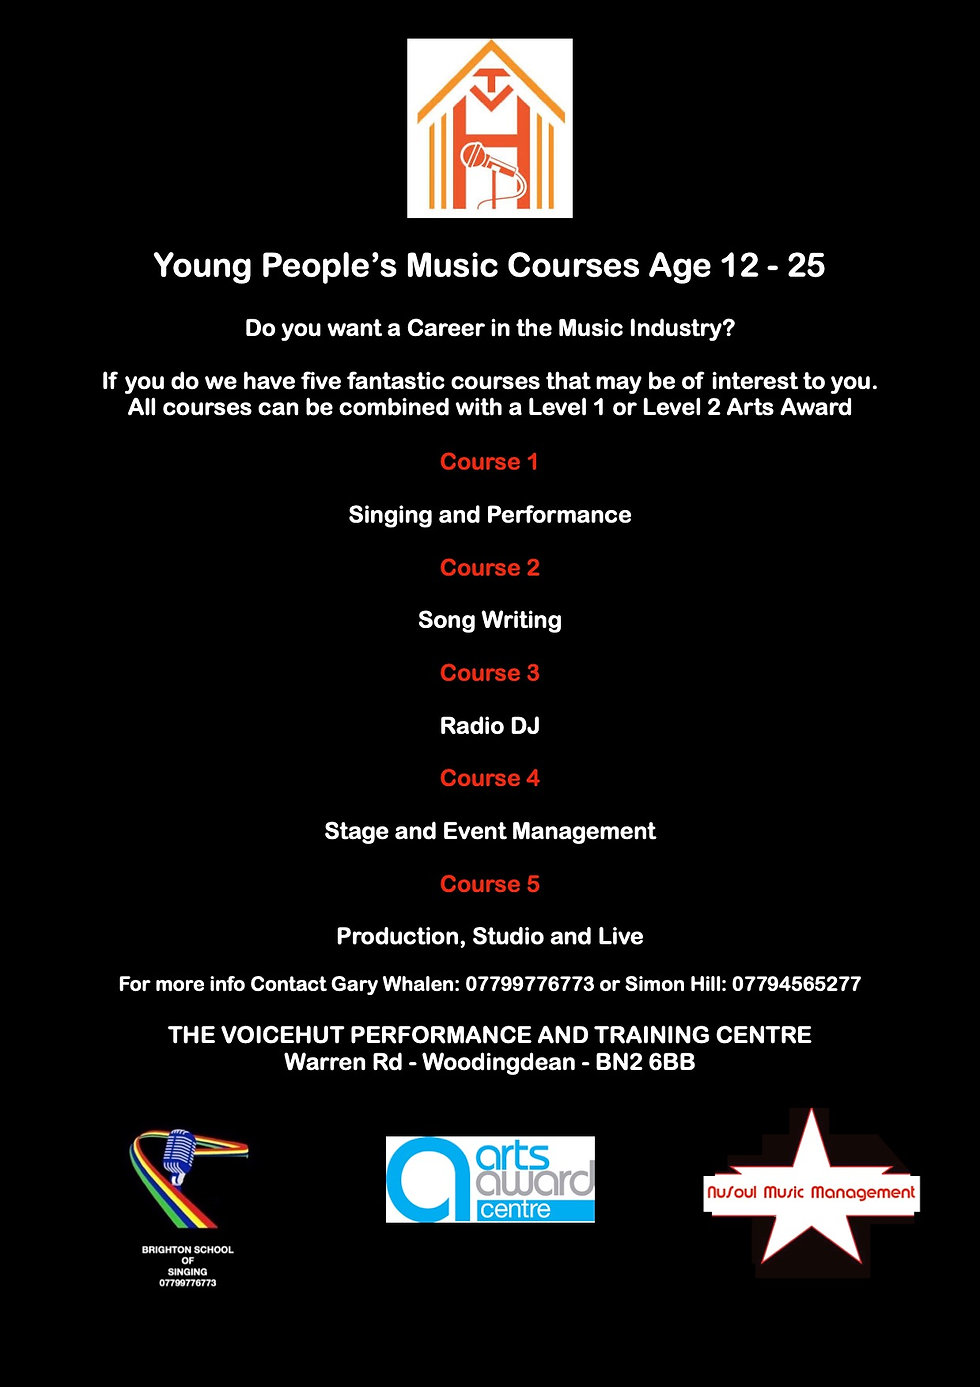 young%20peoples%20music%20courses_edited.jpg